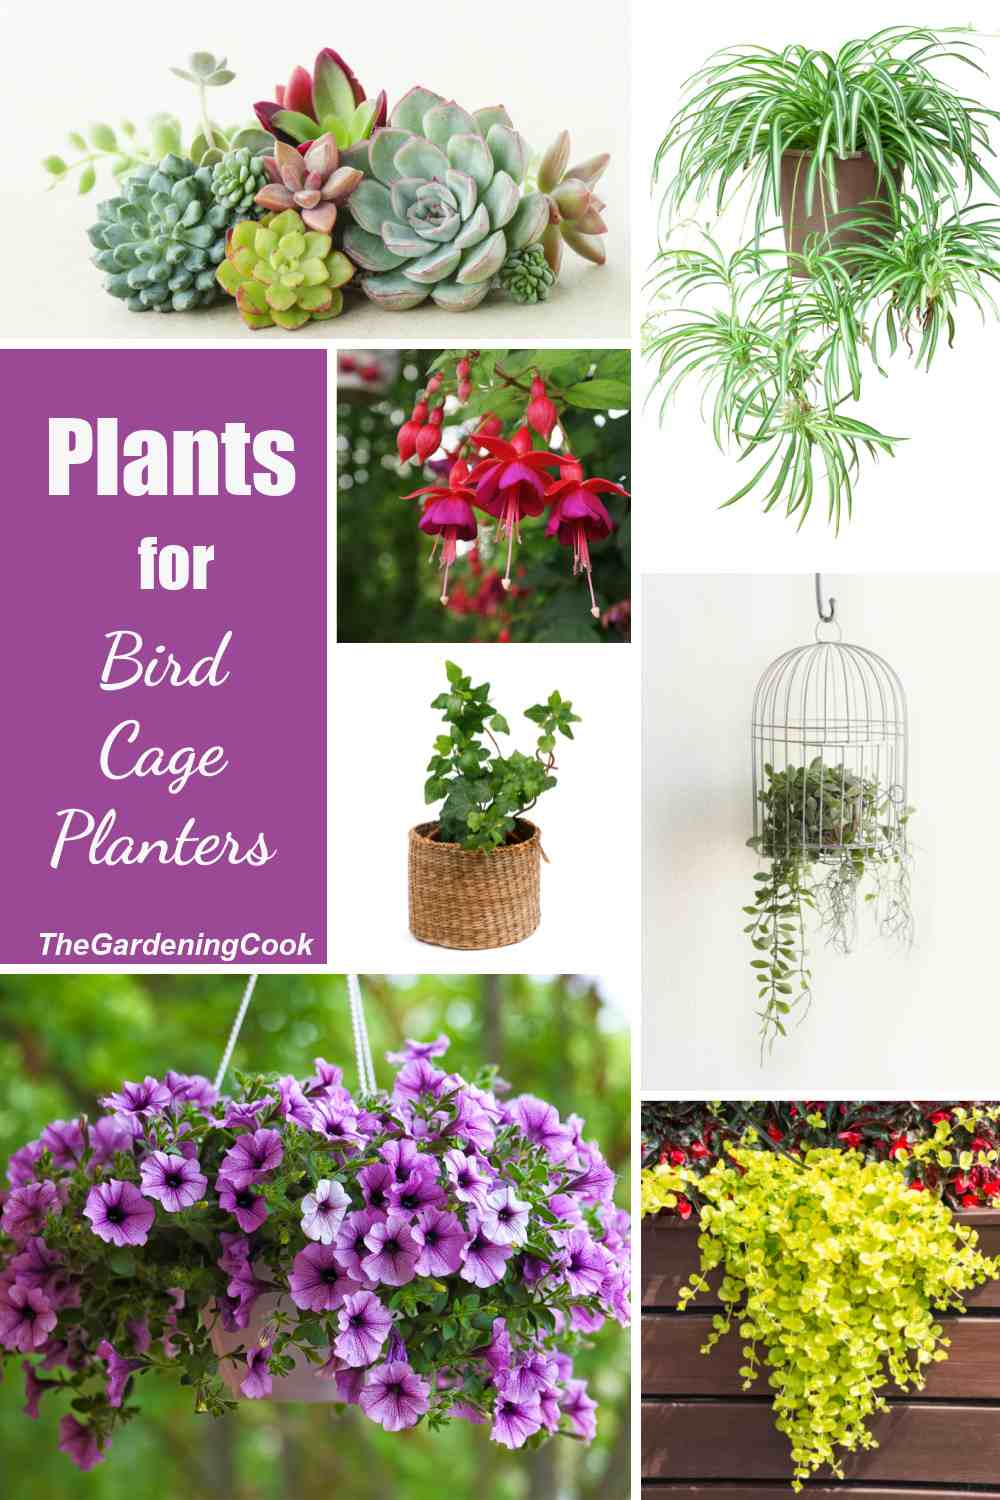 Plants in a collage with words Plants for bird cage planters.